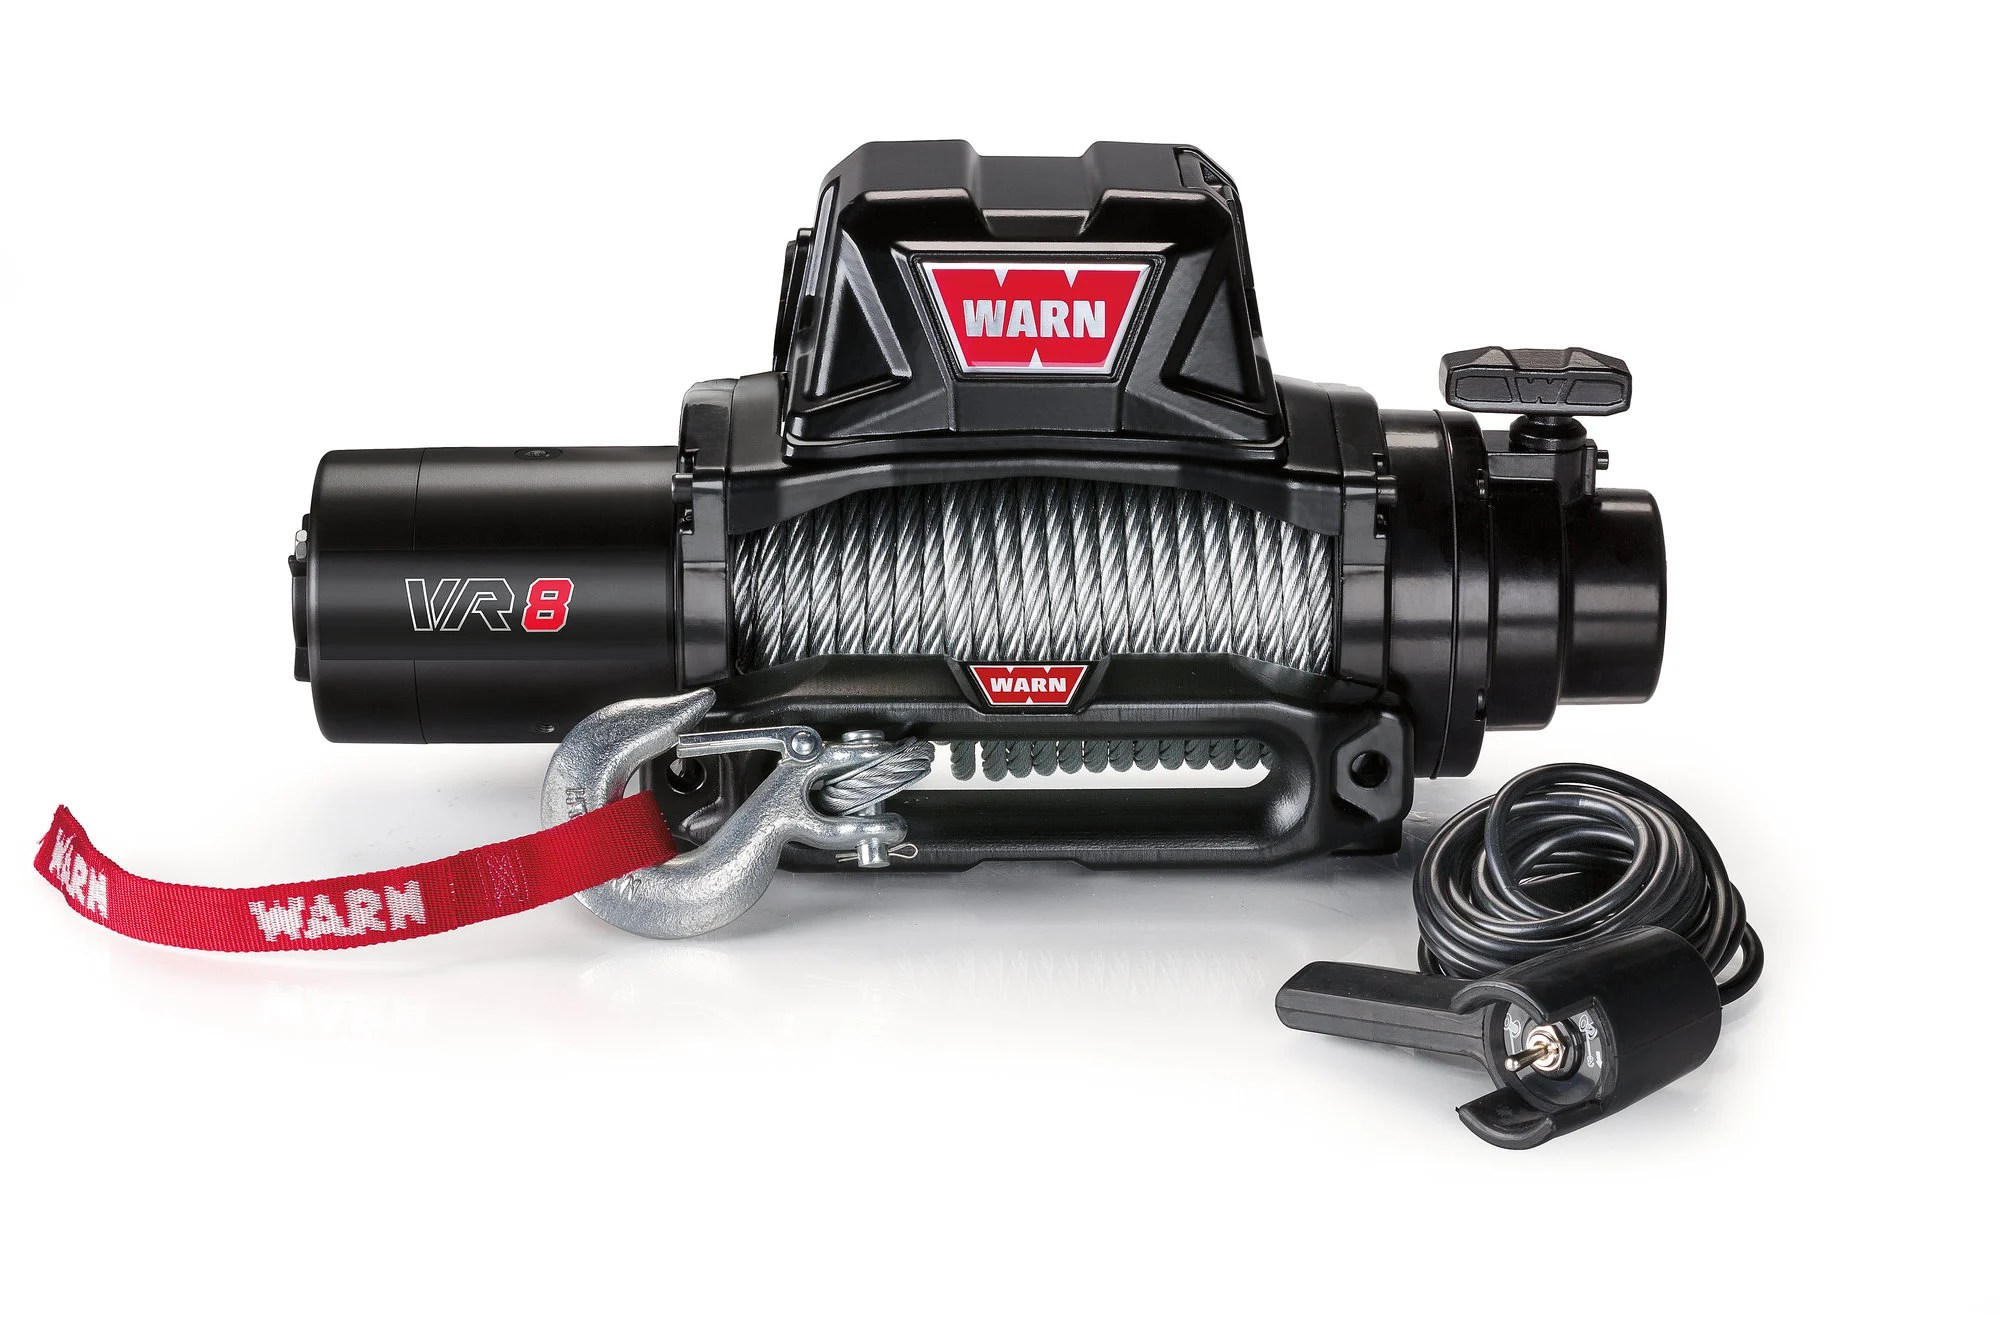 WARN 96800 VR8 Series 8000lb Winch?resize=665%2C443&ssl=1 wiring diagram for winch ramsey re 12000 old ramsey winch wiring ramsey 12000 lb winch wiring diagram at soozxer.org